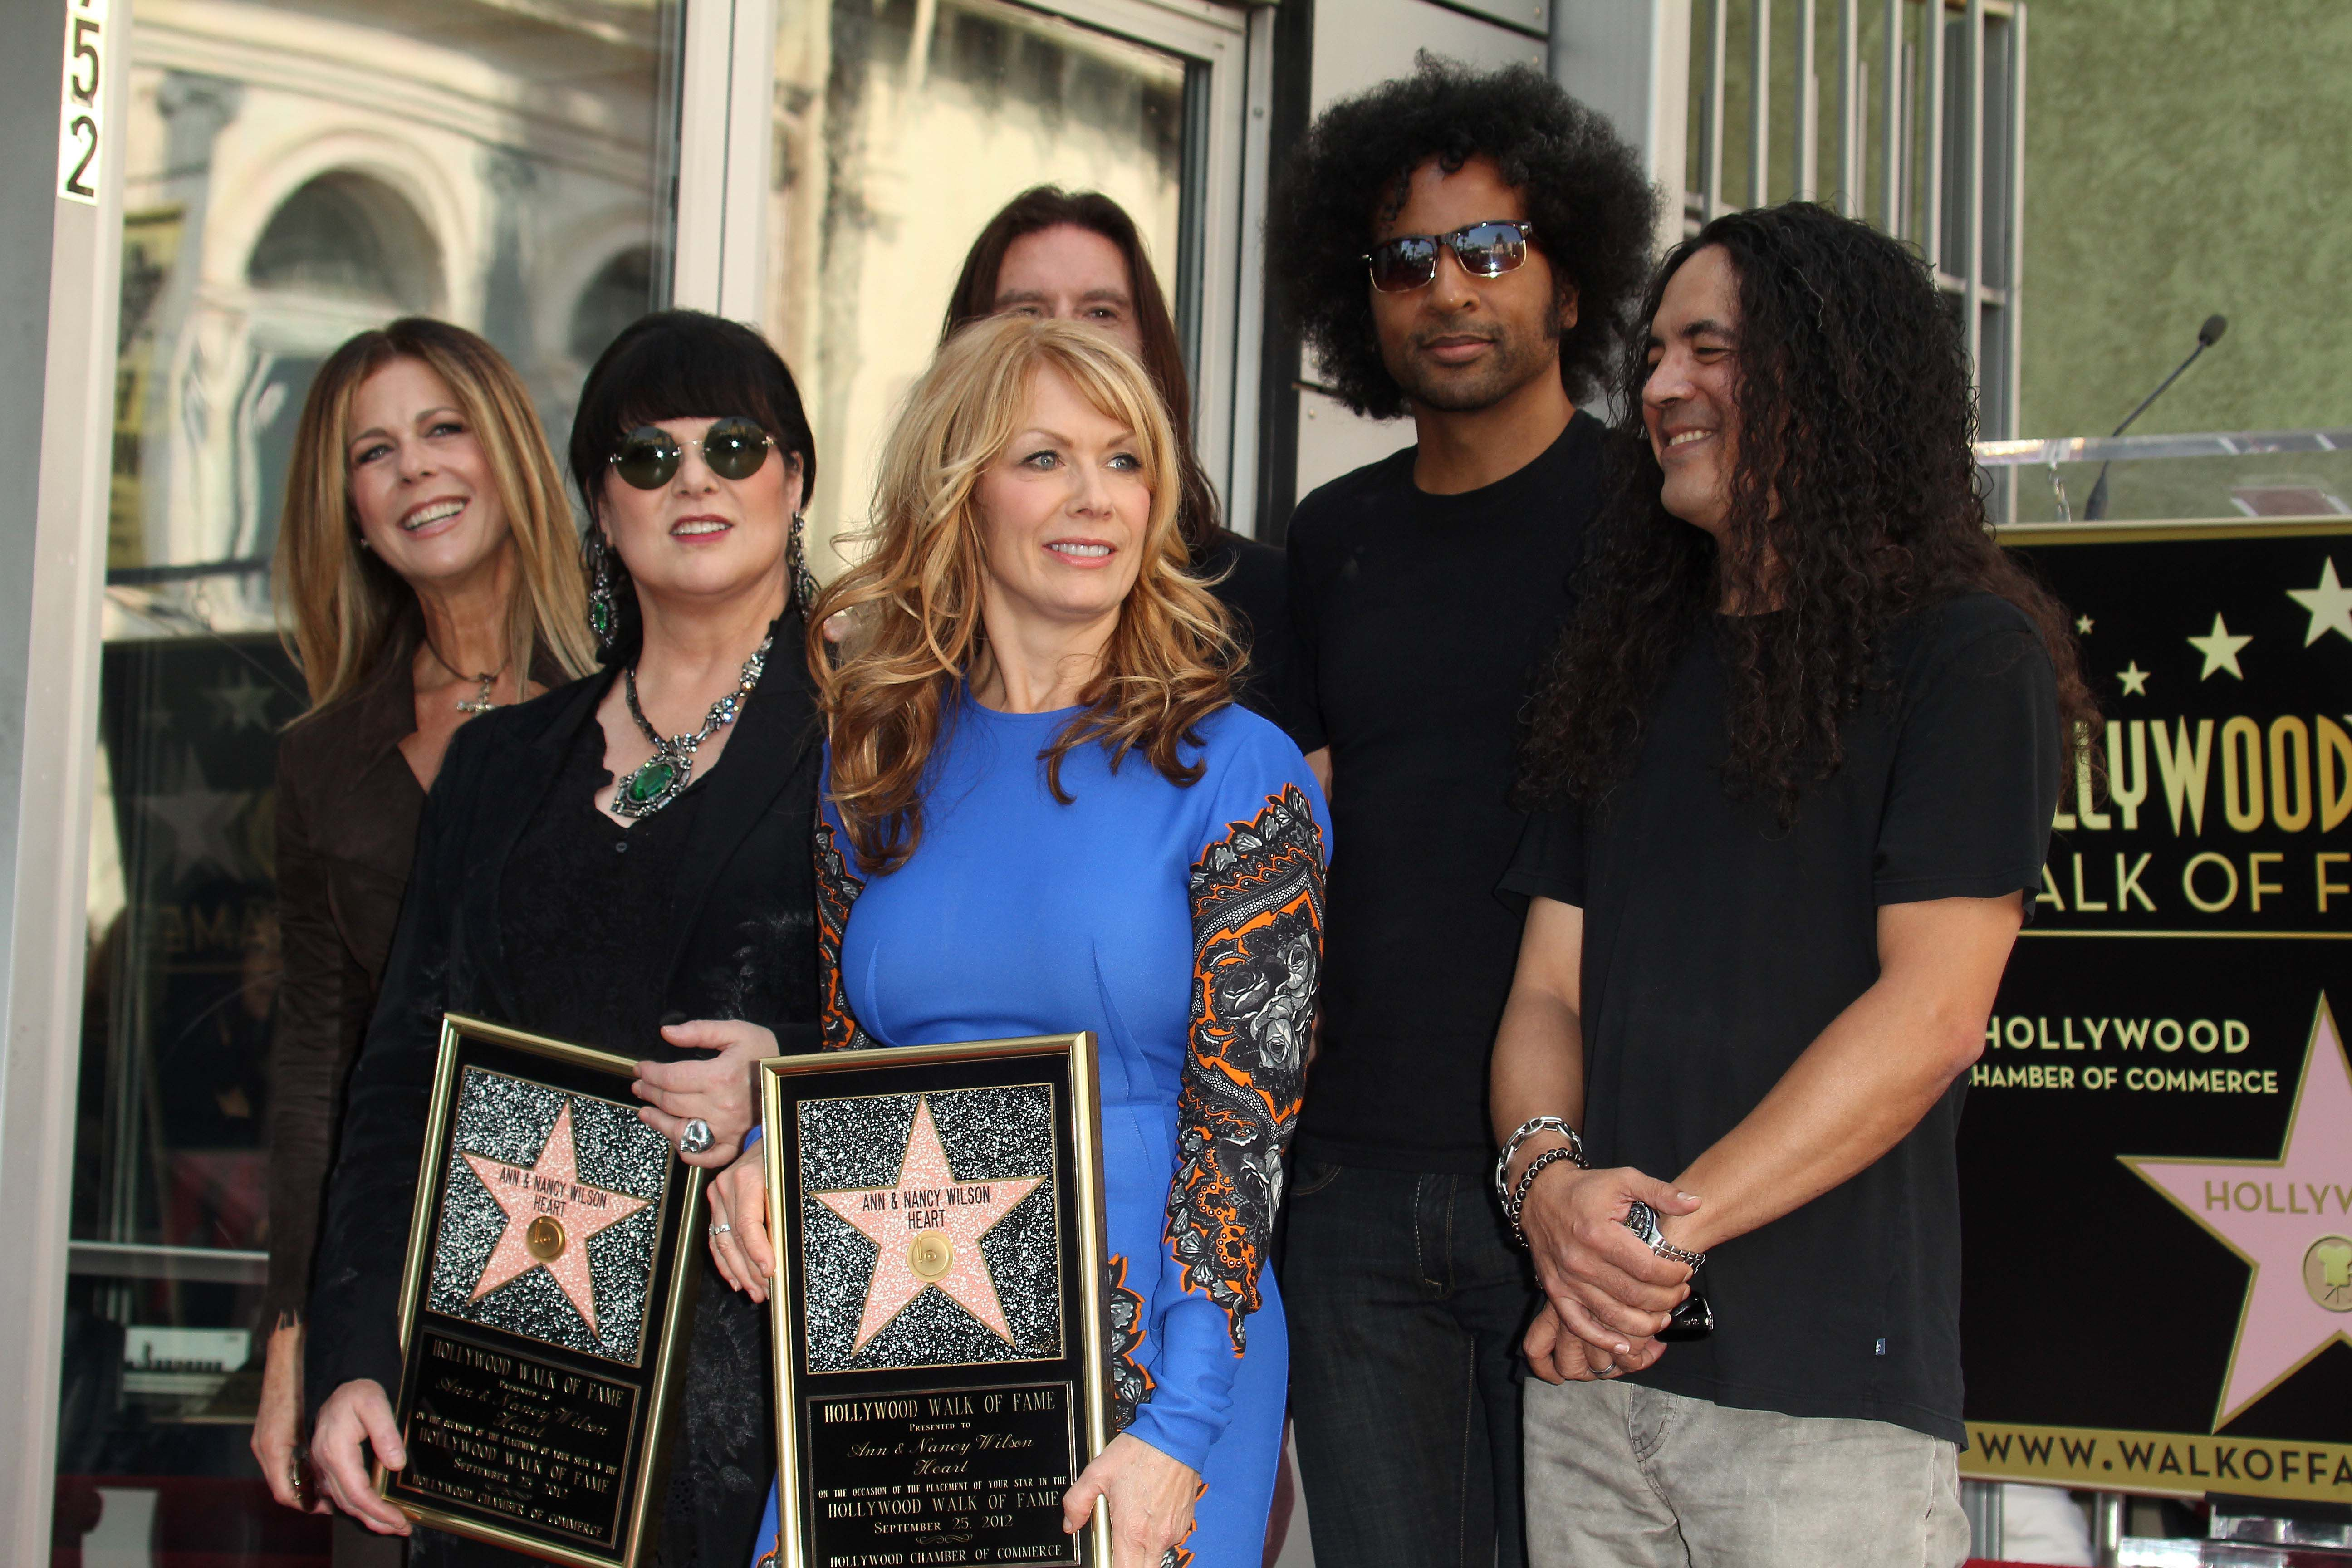 At The Induction Ceremony For Heart Into The Hollywood Walk Of Fame, Hollywood, CA 09 25 12